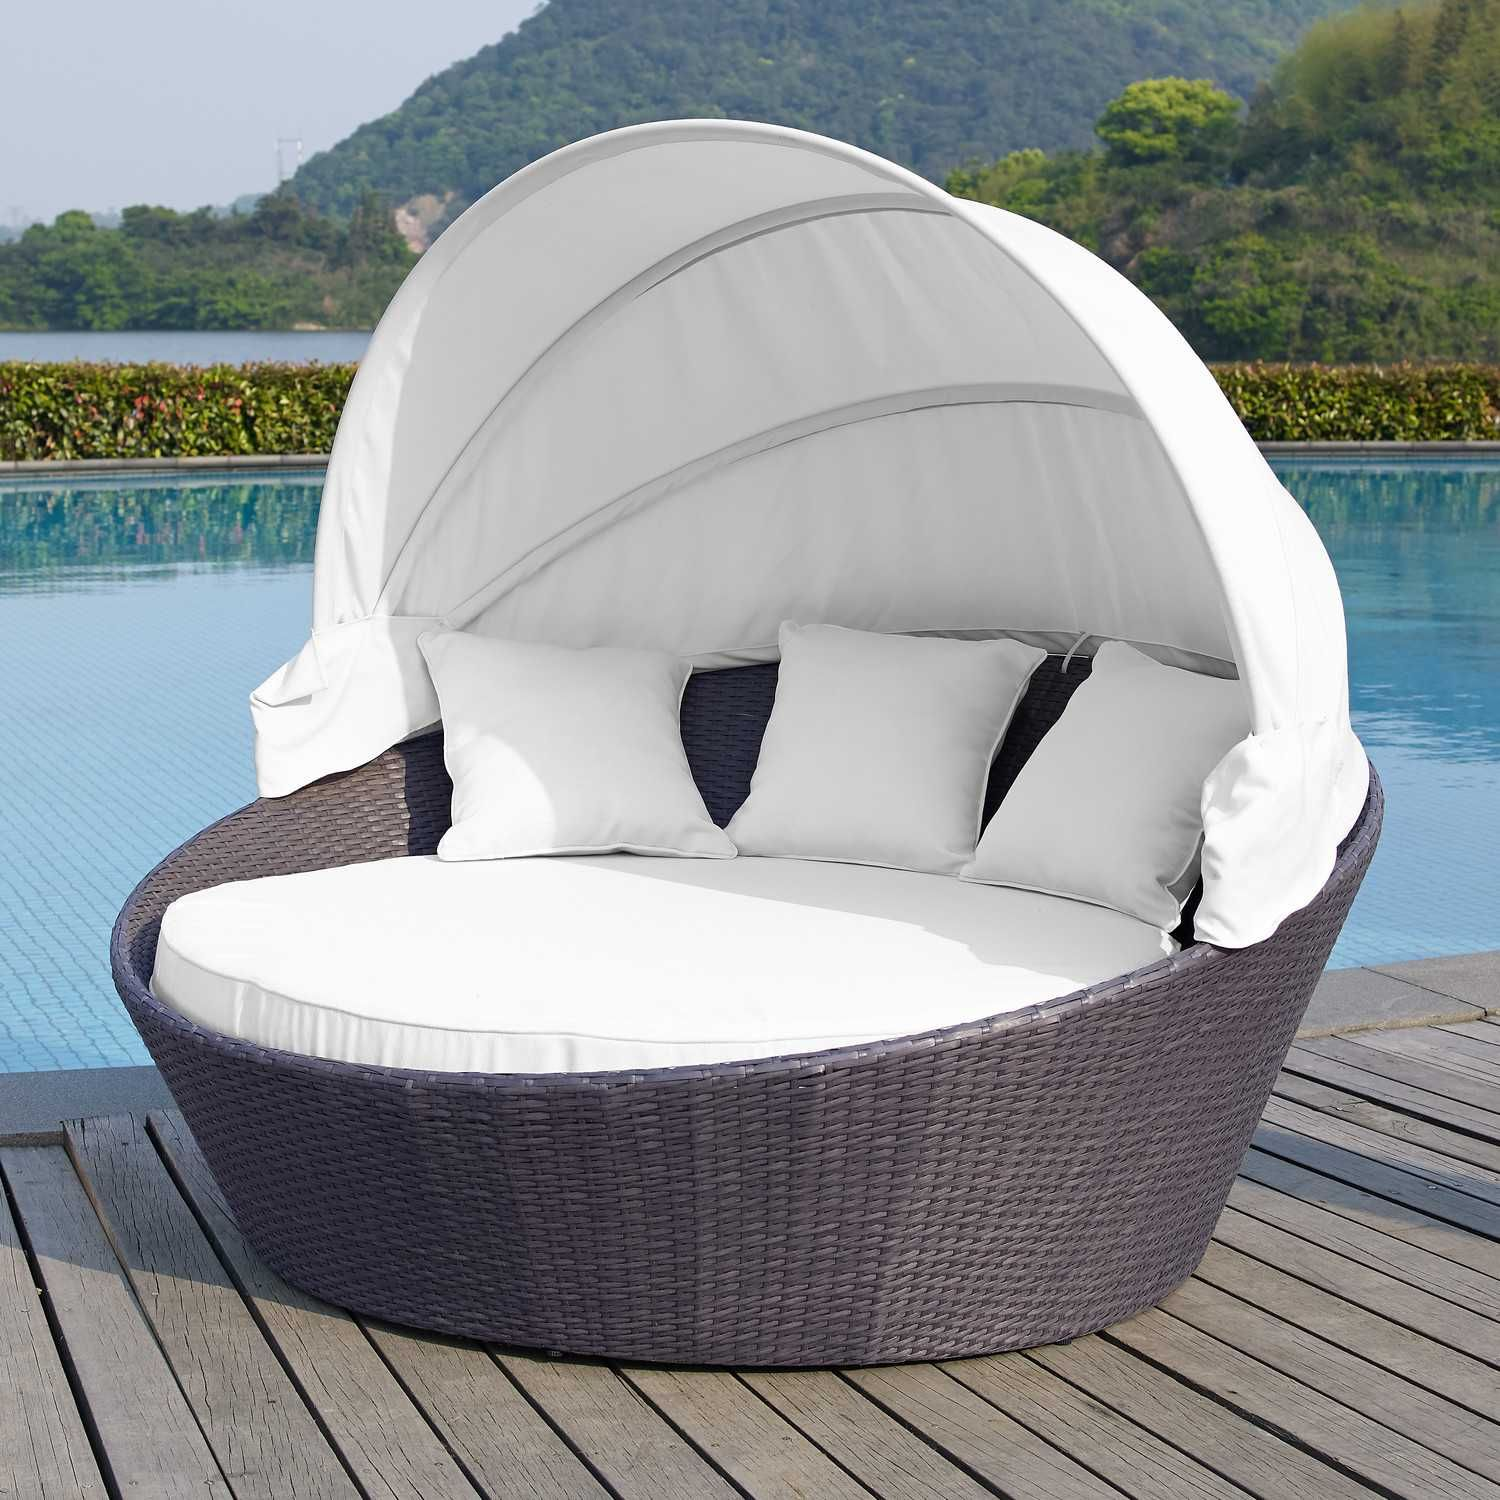 Designer Möbel Outlet Chaiselongue Outdoor Pool Möbel Mesh Chaise Lounge Outdoor Möbel